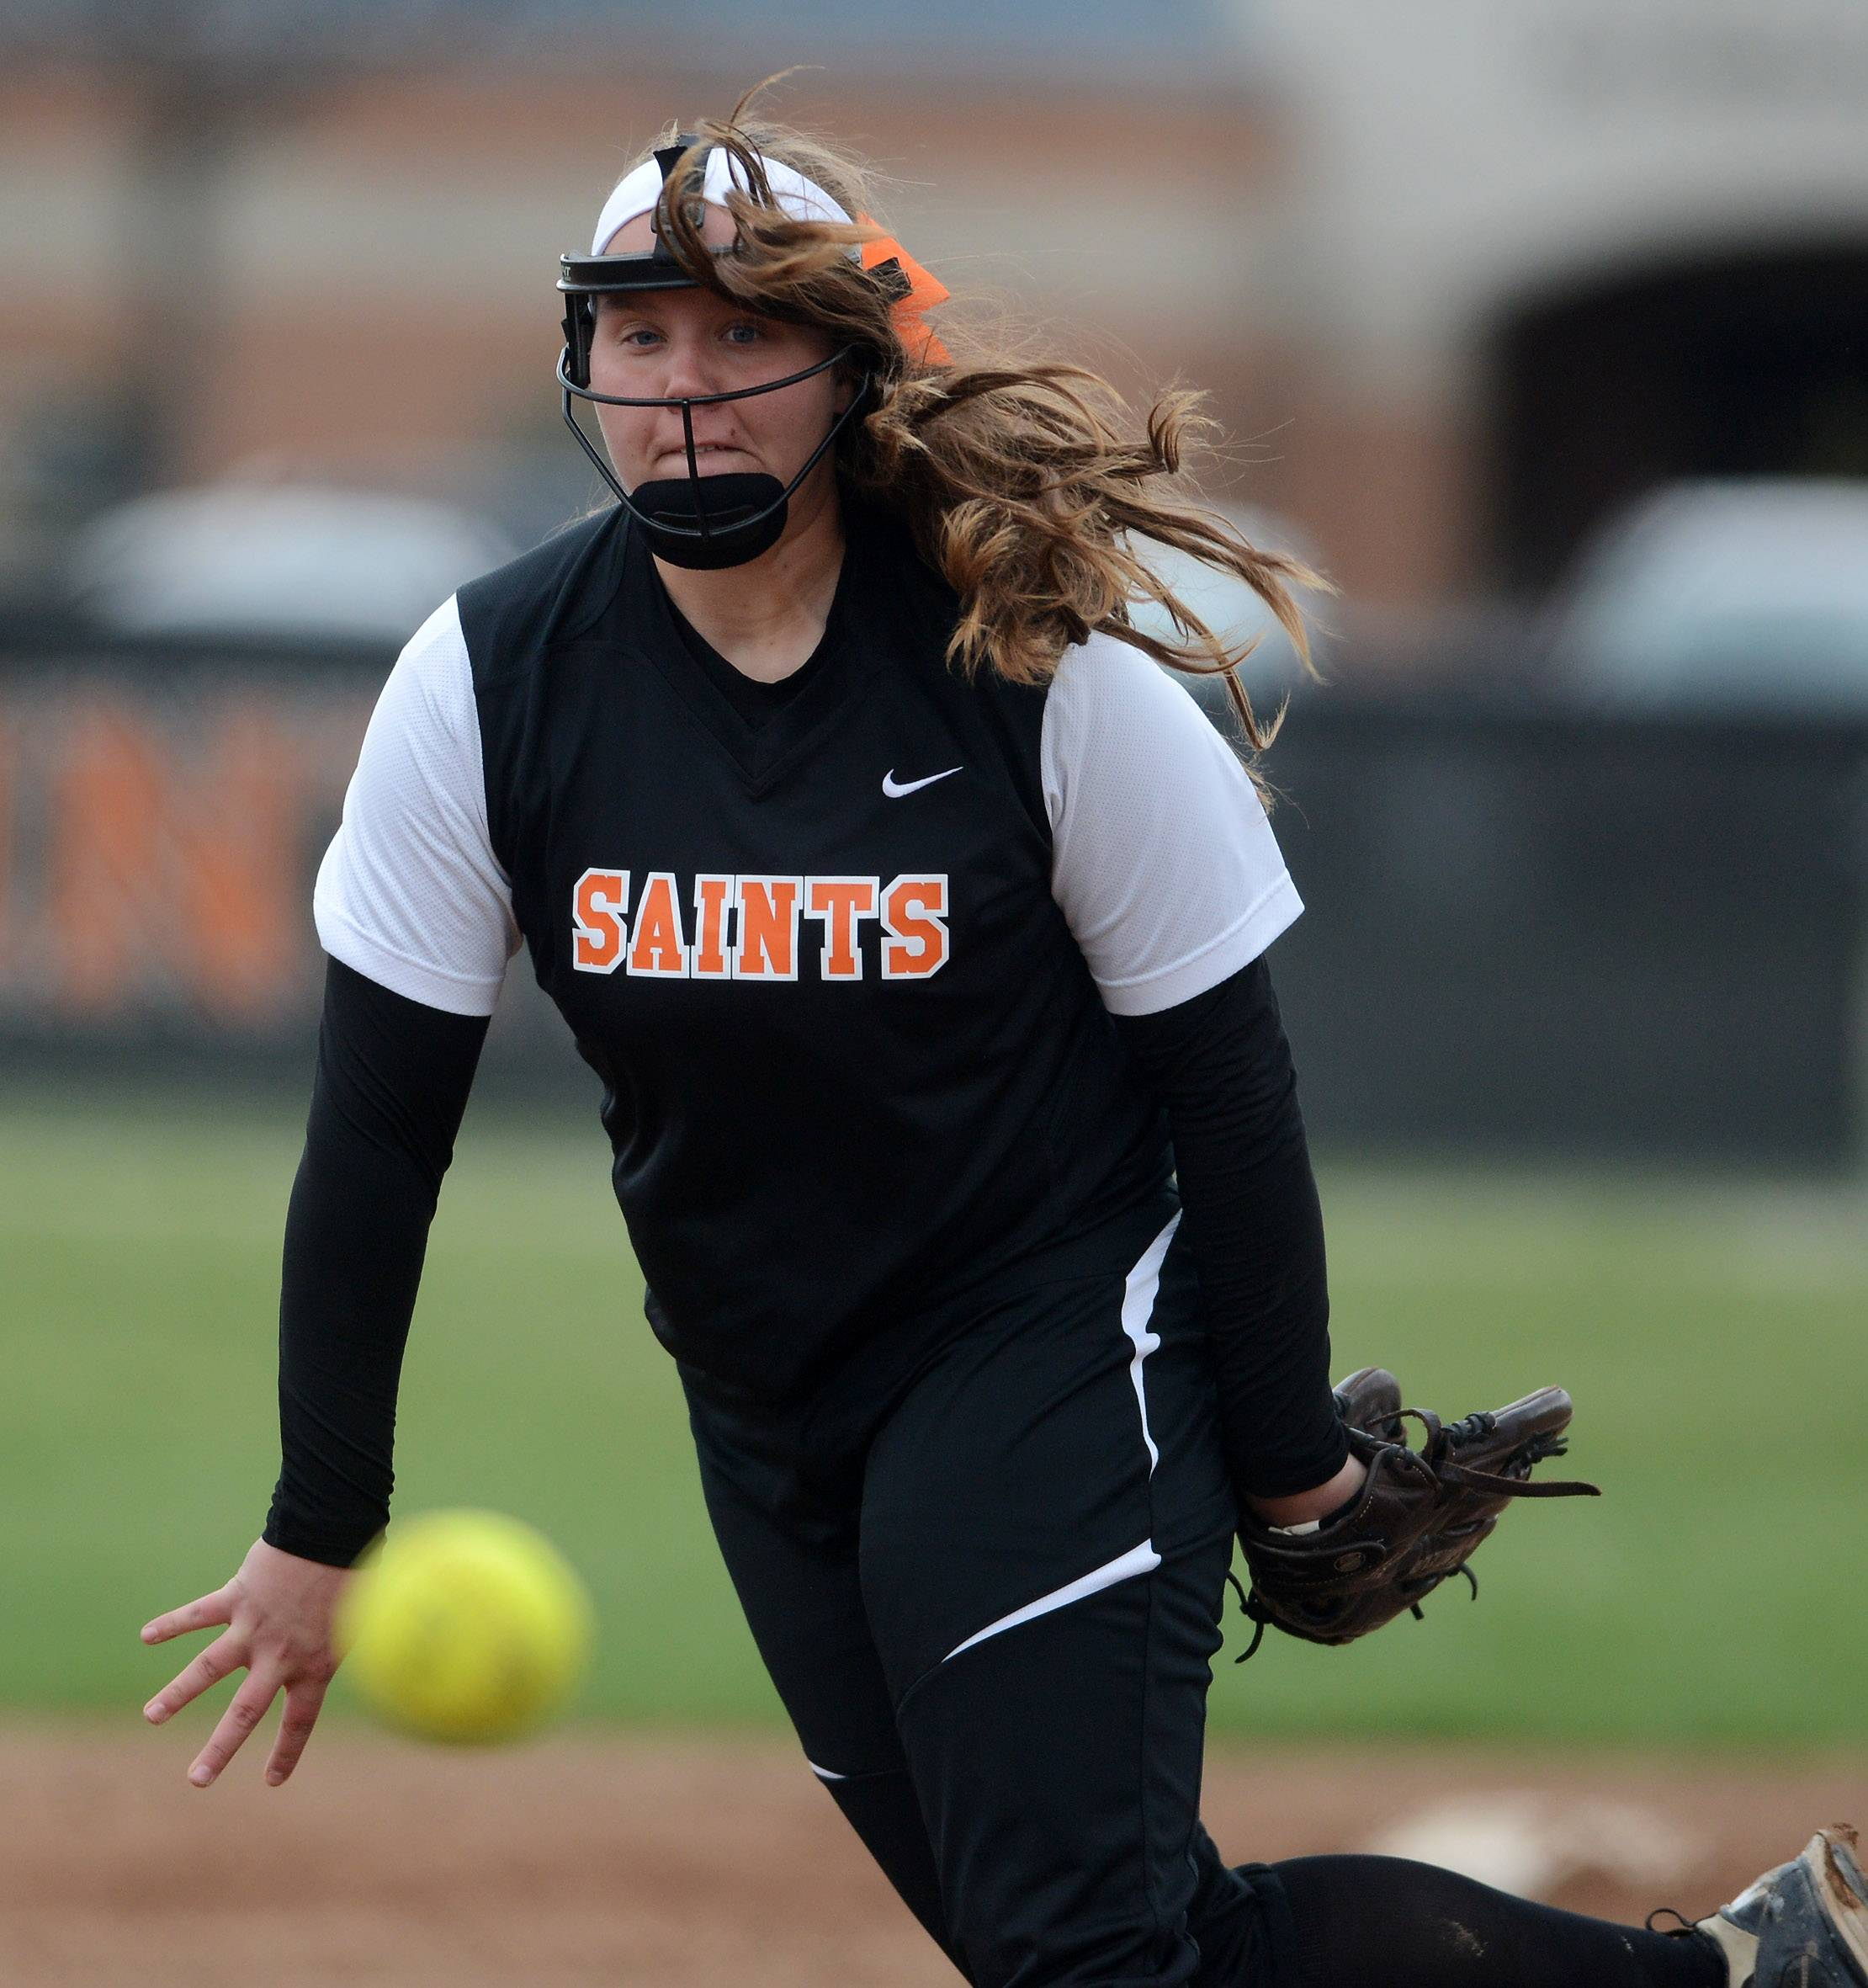 St. Charles East's Haley Beno delivers a pitch during Tuesday's game in St. Charles.